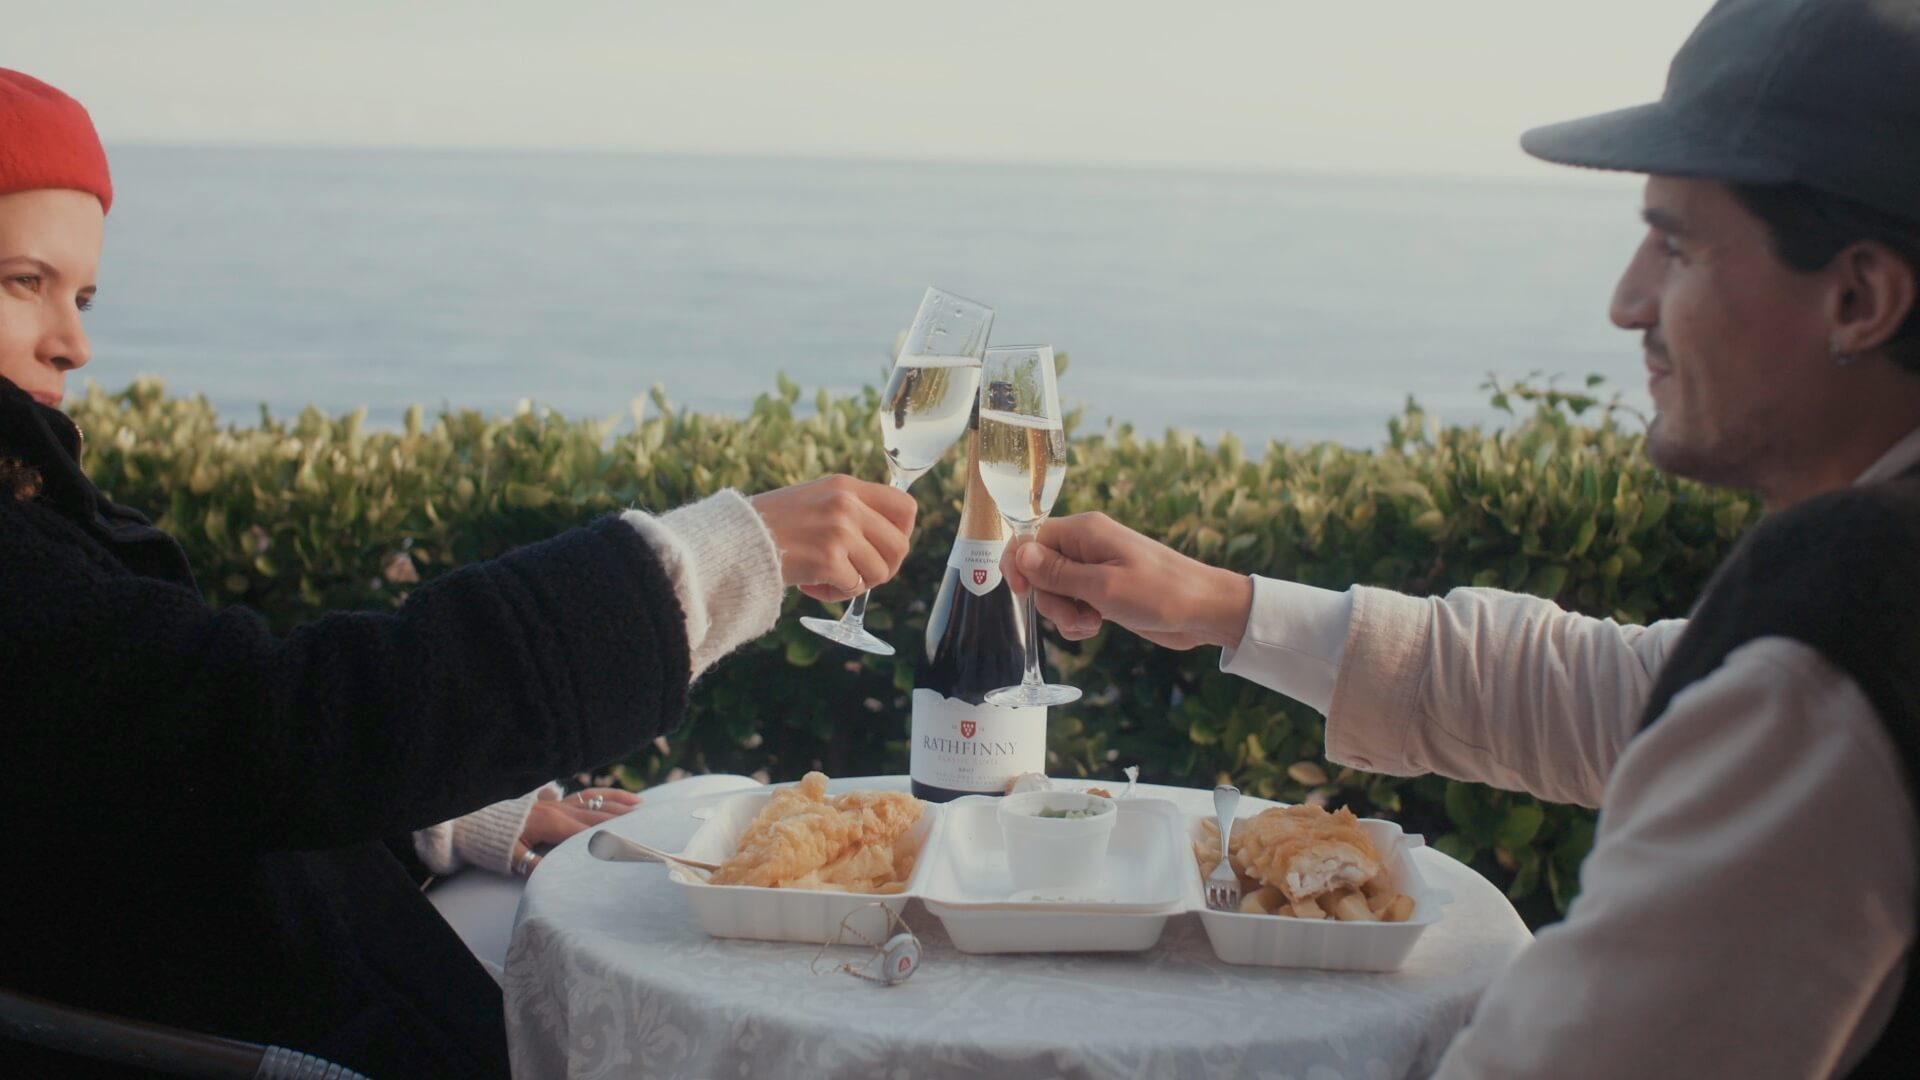 Fish and chips and sparkling wine